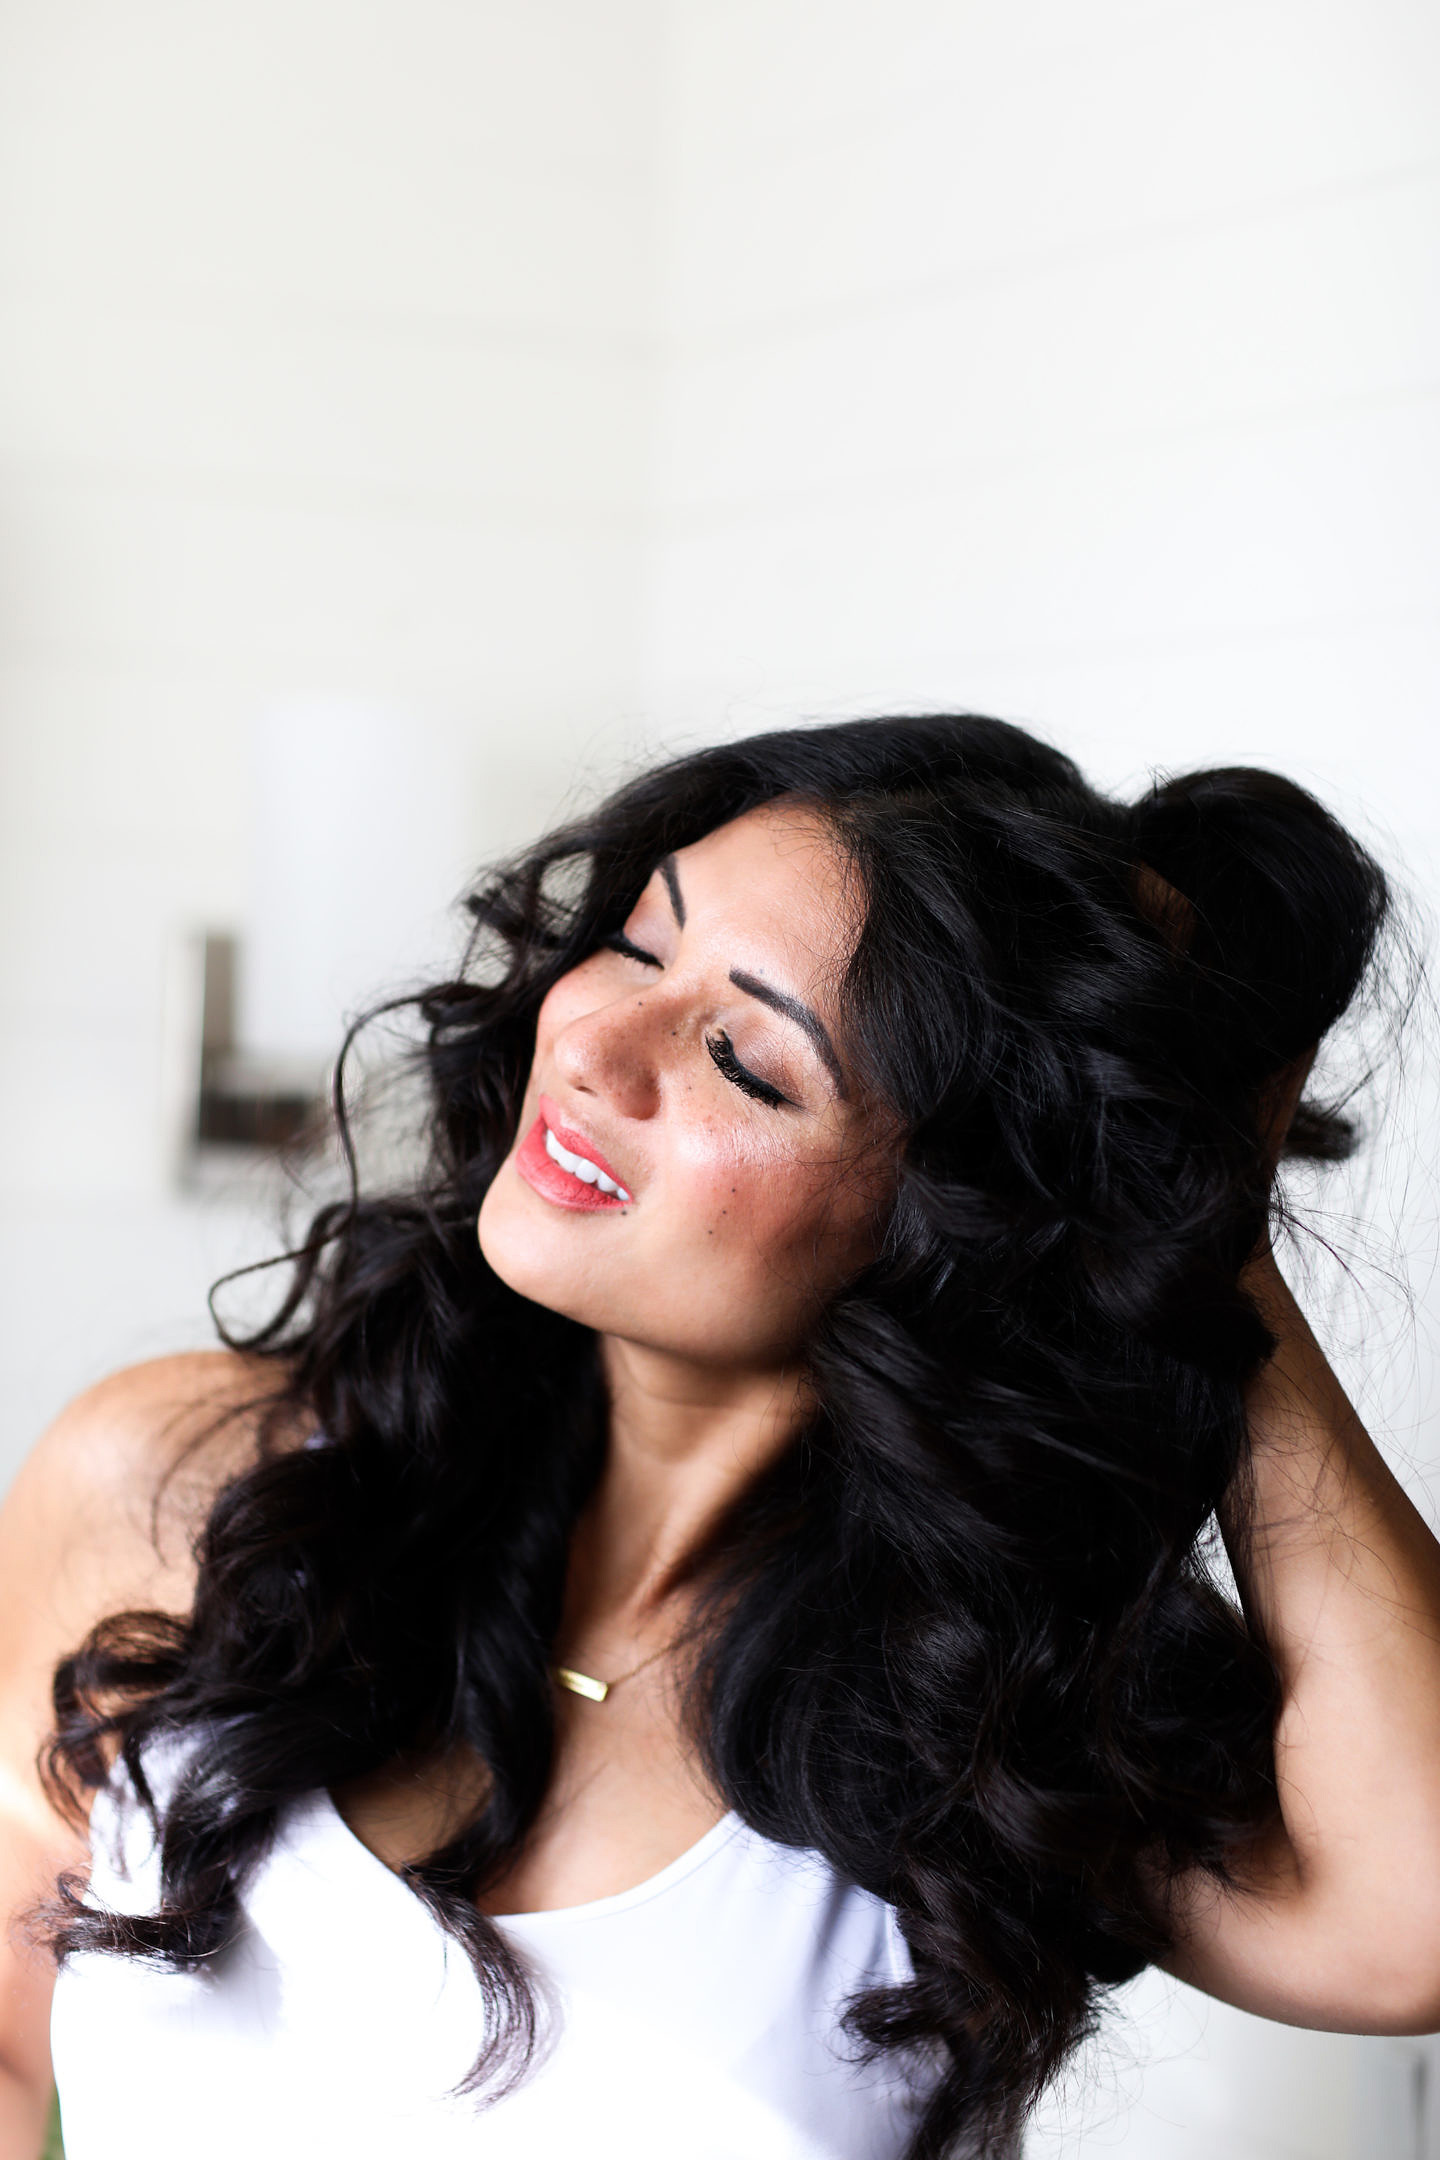 Bookmark this post ASAP if you are curious how to get the perfect curls at home. Orange County Blogger Debbie Savage is sharing her top tips to achieving those perfect curls in the luxury of your own home.